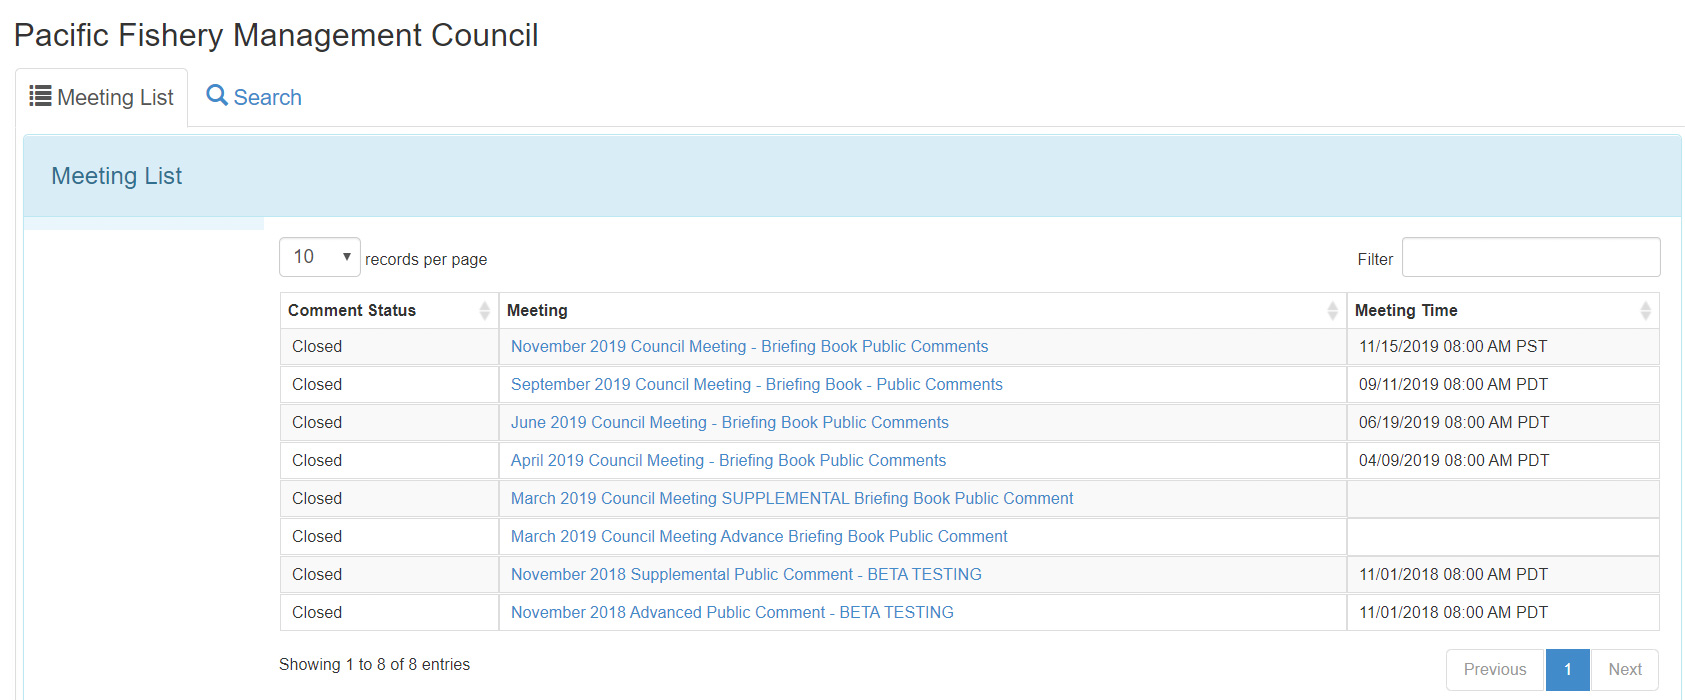 A computer screen showing a series of council meetings from which to choose in order to submit public comment